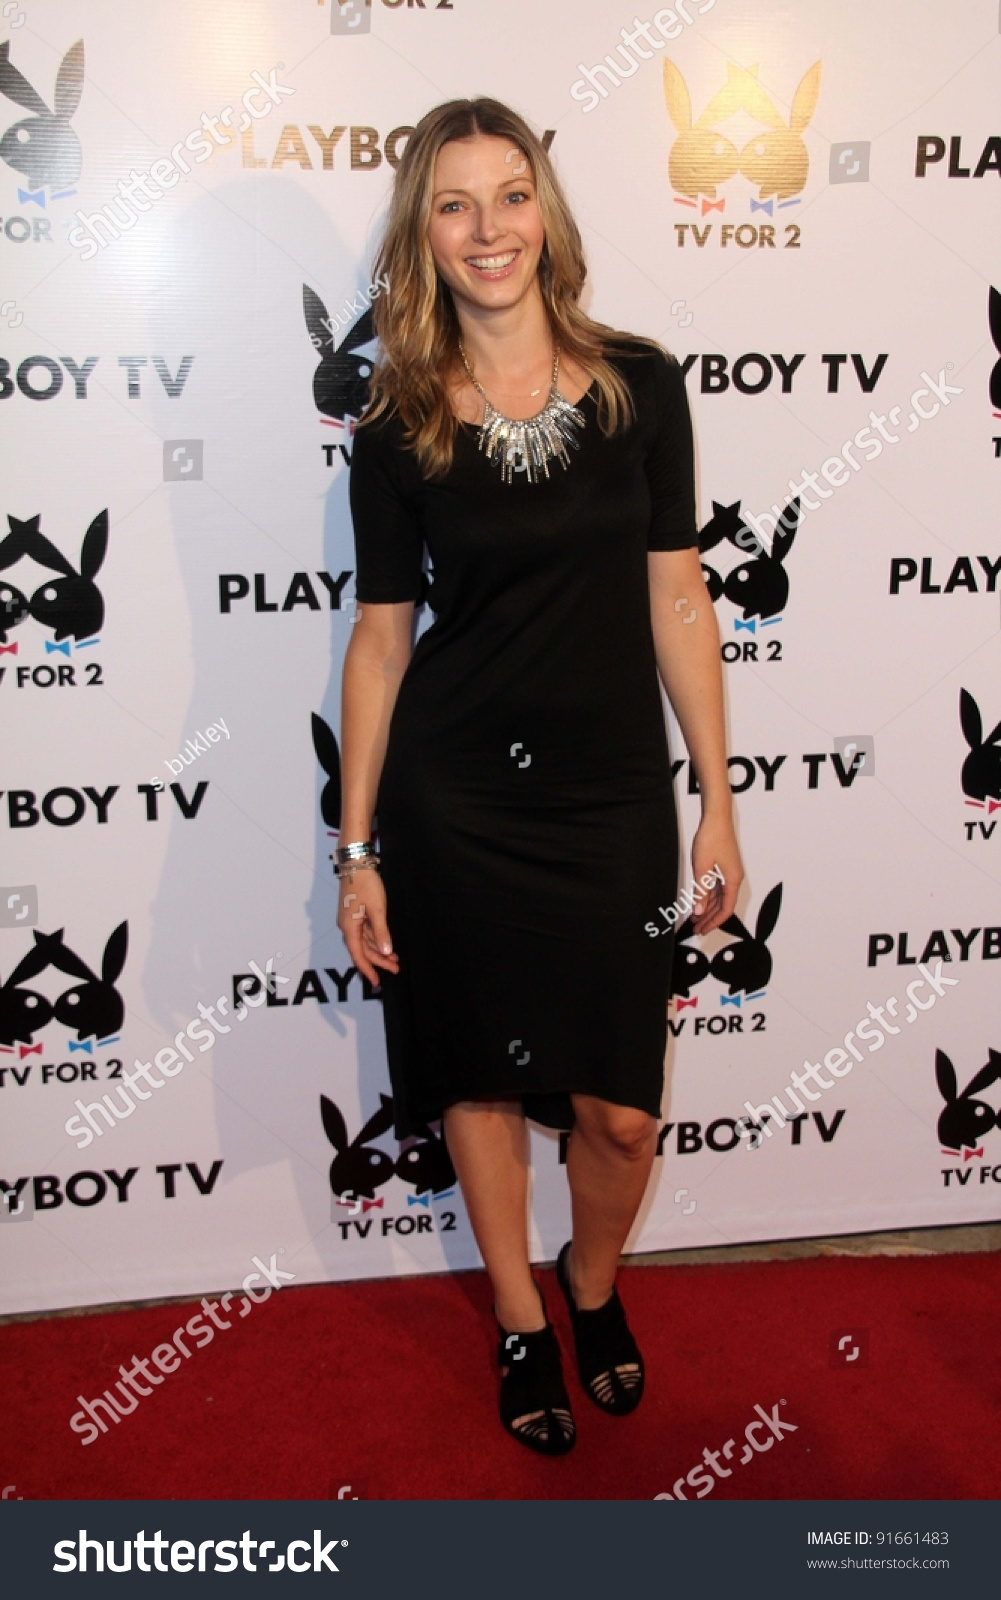 rachel perry playboy tv tv 2 stock photo & image (royalty-free